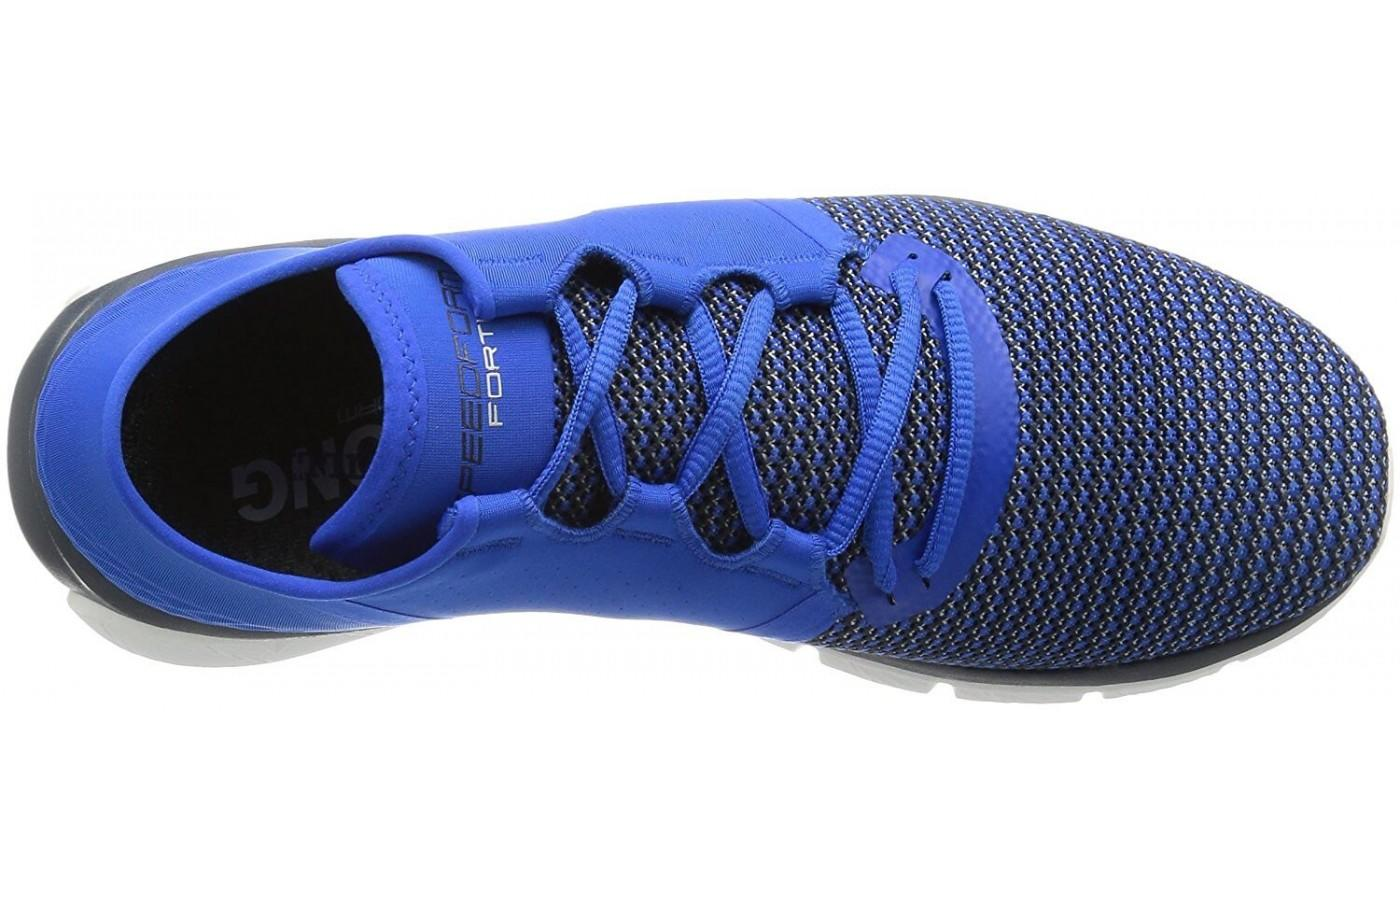 This shoe features an embedded sock liner for added comfort and odor control.